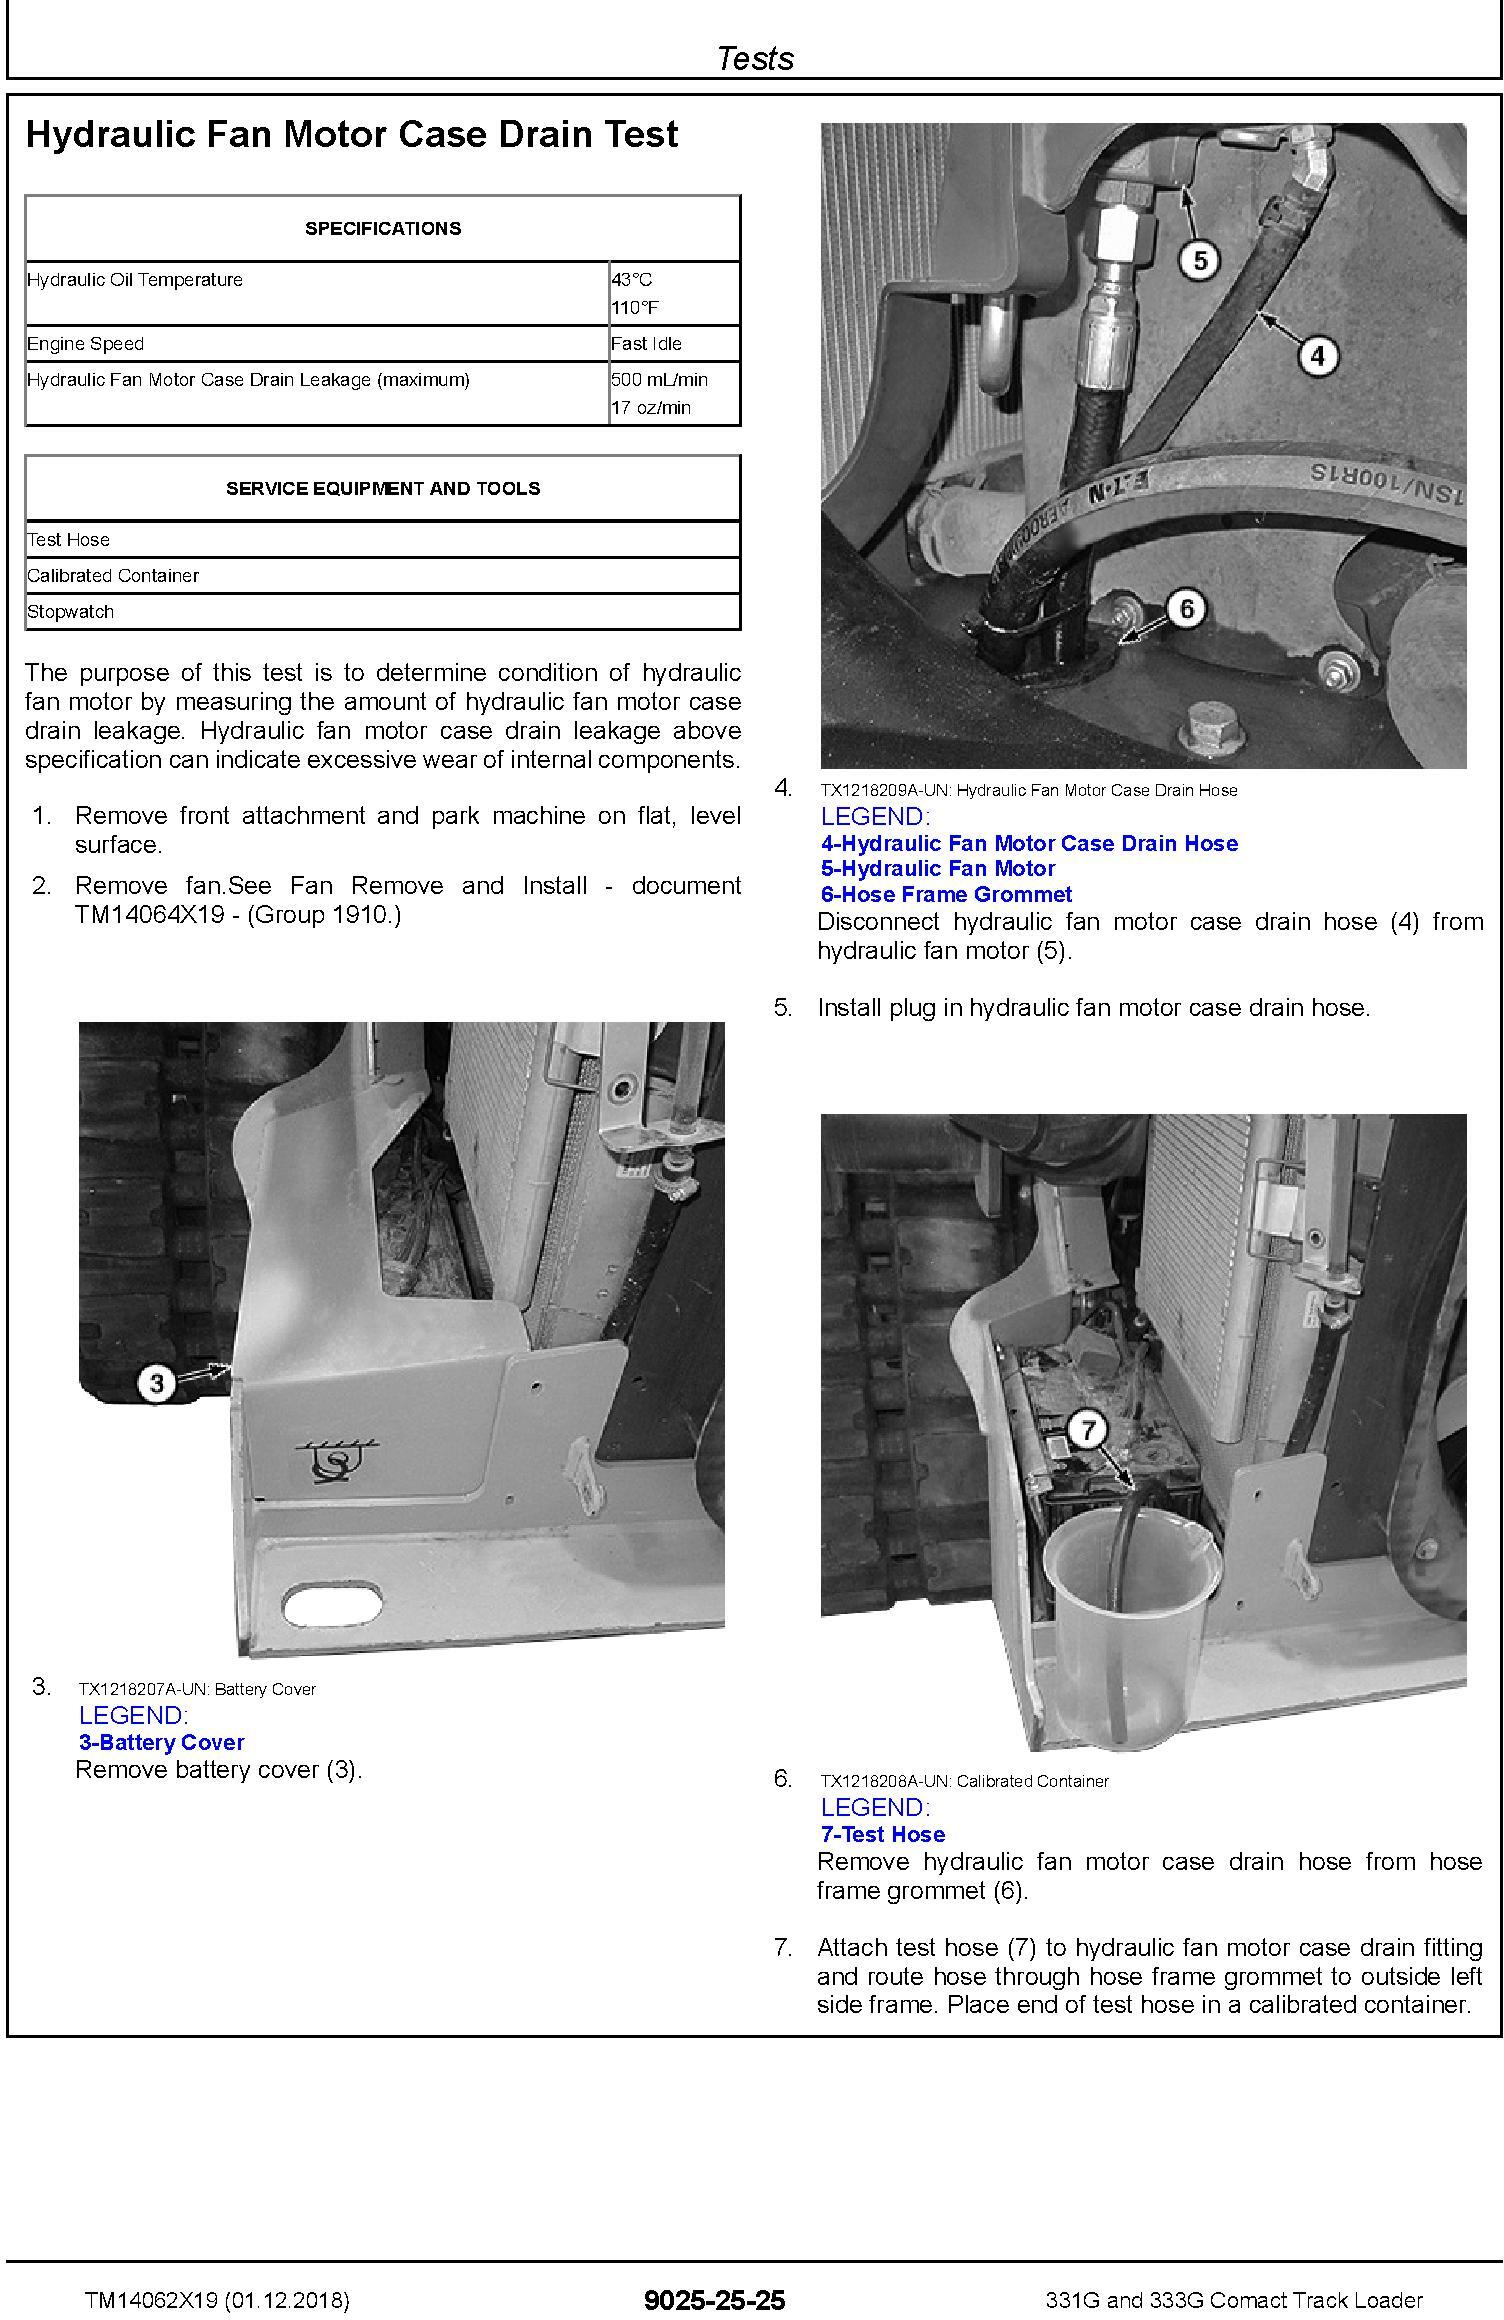 John Deere 331G and 333G Comact Track Loader Operation & Test Technical Service Manual (TM14062X19) - 2